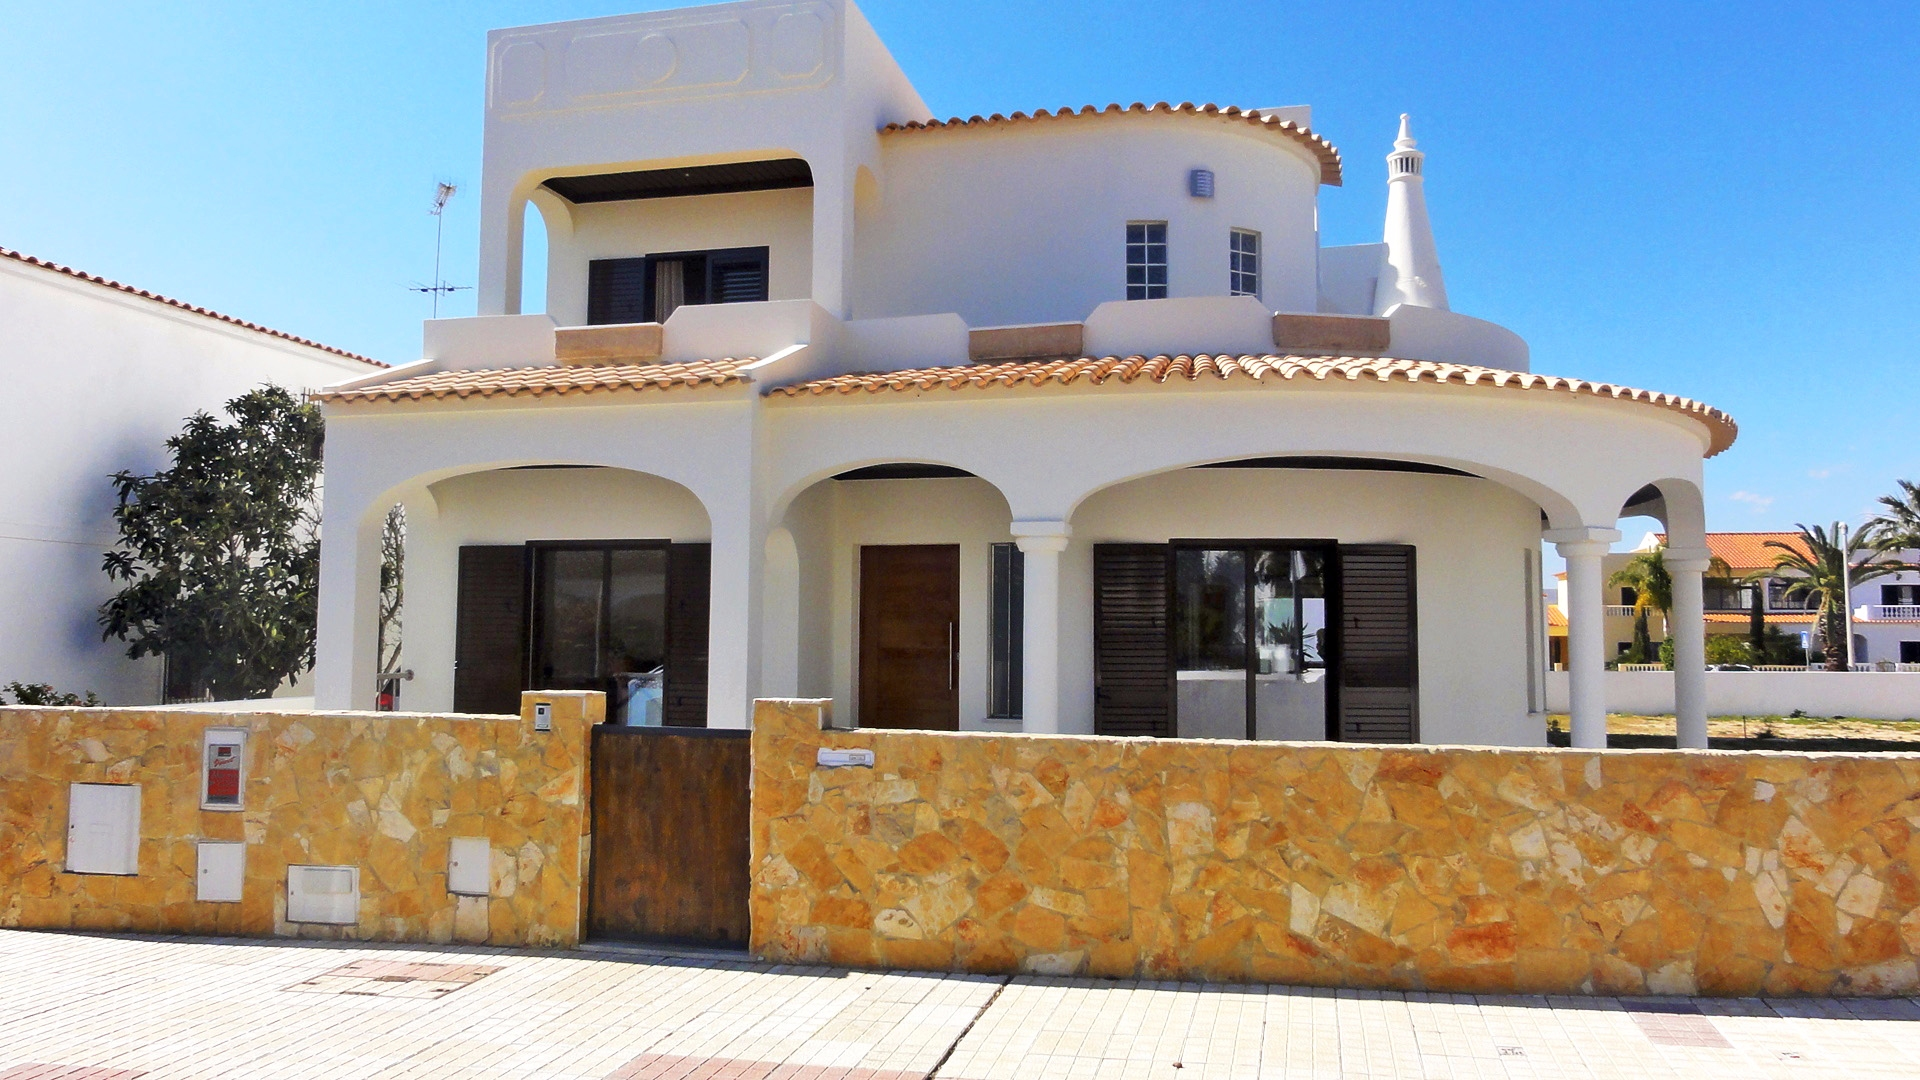 Modern 4 bedroom villa near the sea and Ria Formosa, Olhao | S1701 4 bedroom villa in a quiet area close to all amenities. It is very spacious and bright and has a large basement and roof terrace. Perfect for holidays or permanent living. In Olhão.